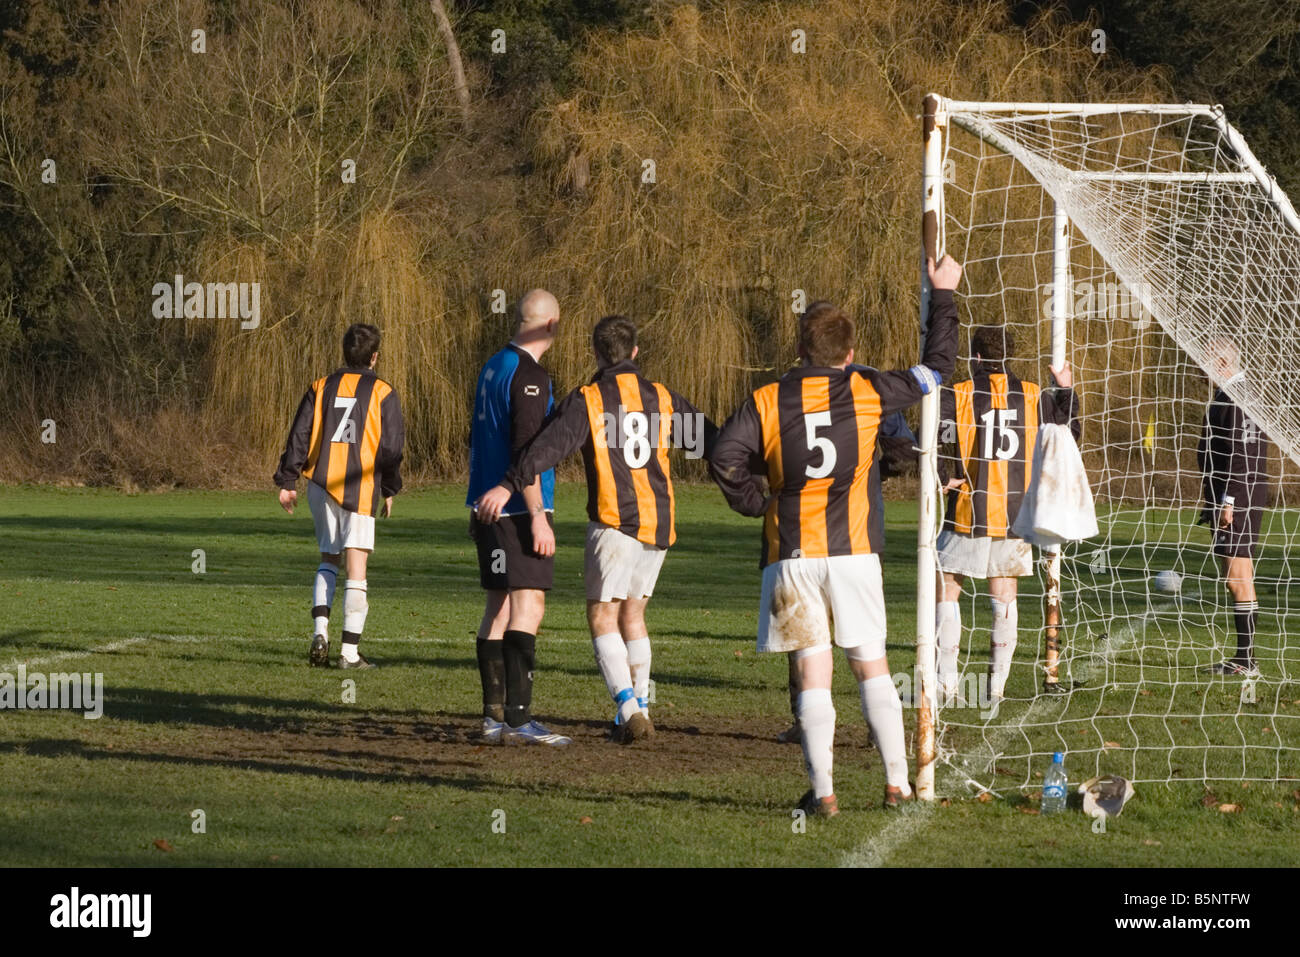 Sunday league Football Match Soccer Players Action Footballers - Stock Image